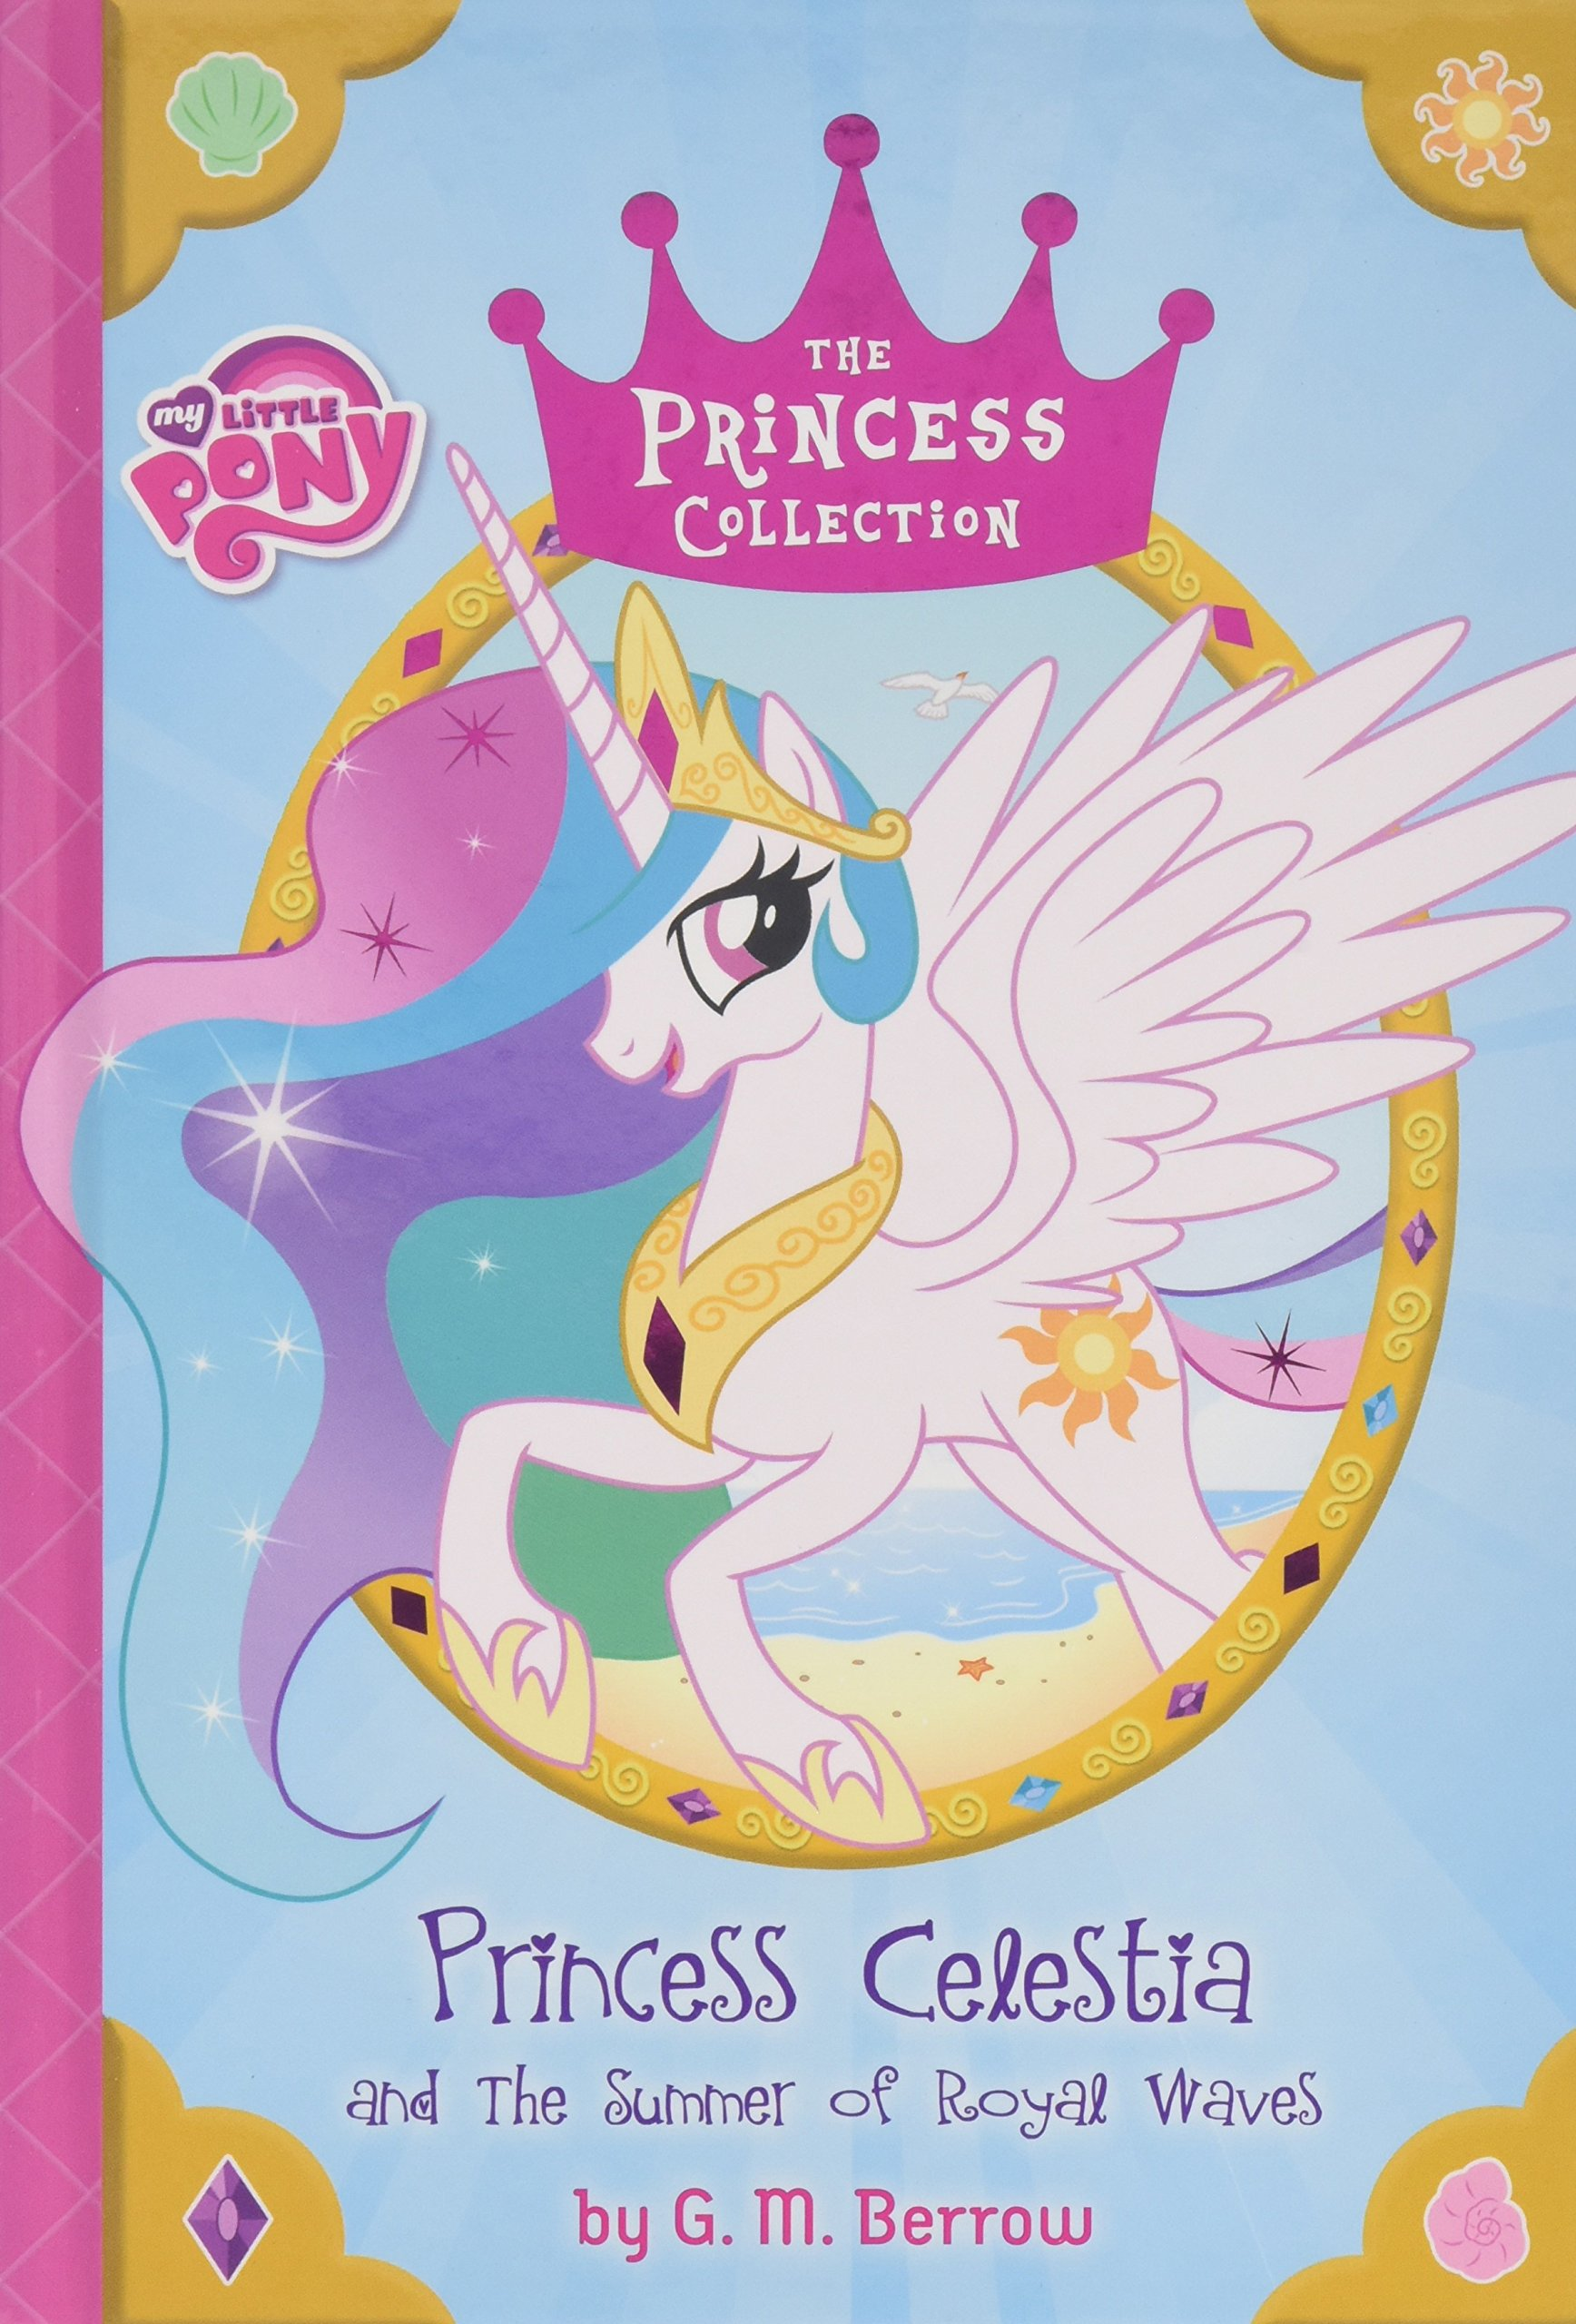 My Little Pony Princess Celestia And The Summer Of Royal Waves The Princess Collection Berrow G M 8601423620831 Amazon Com Books